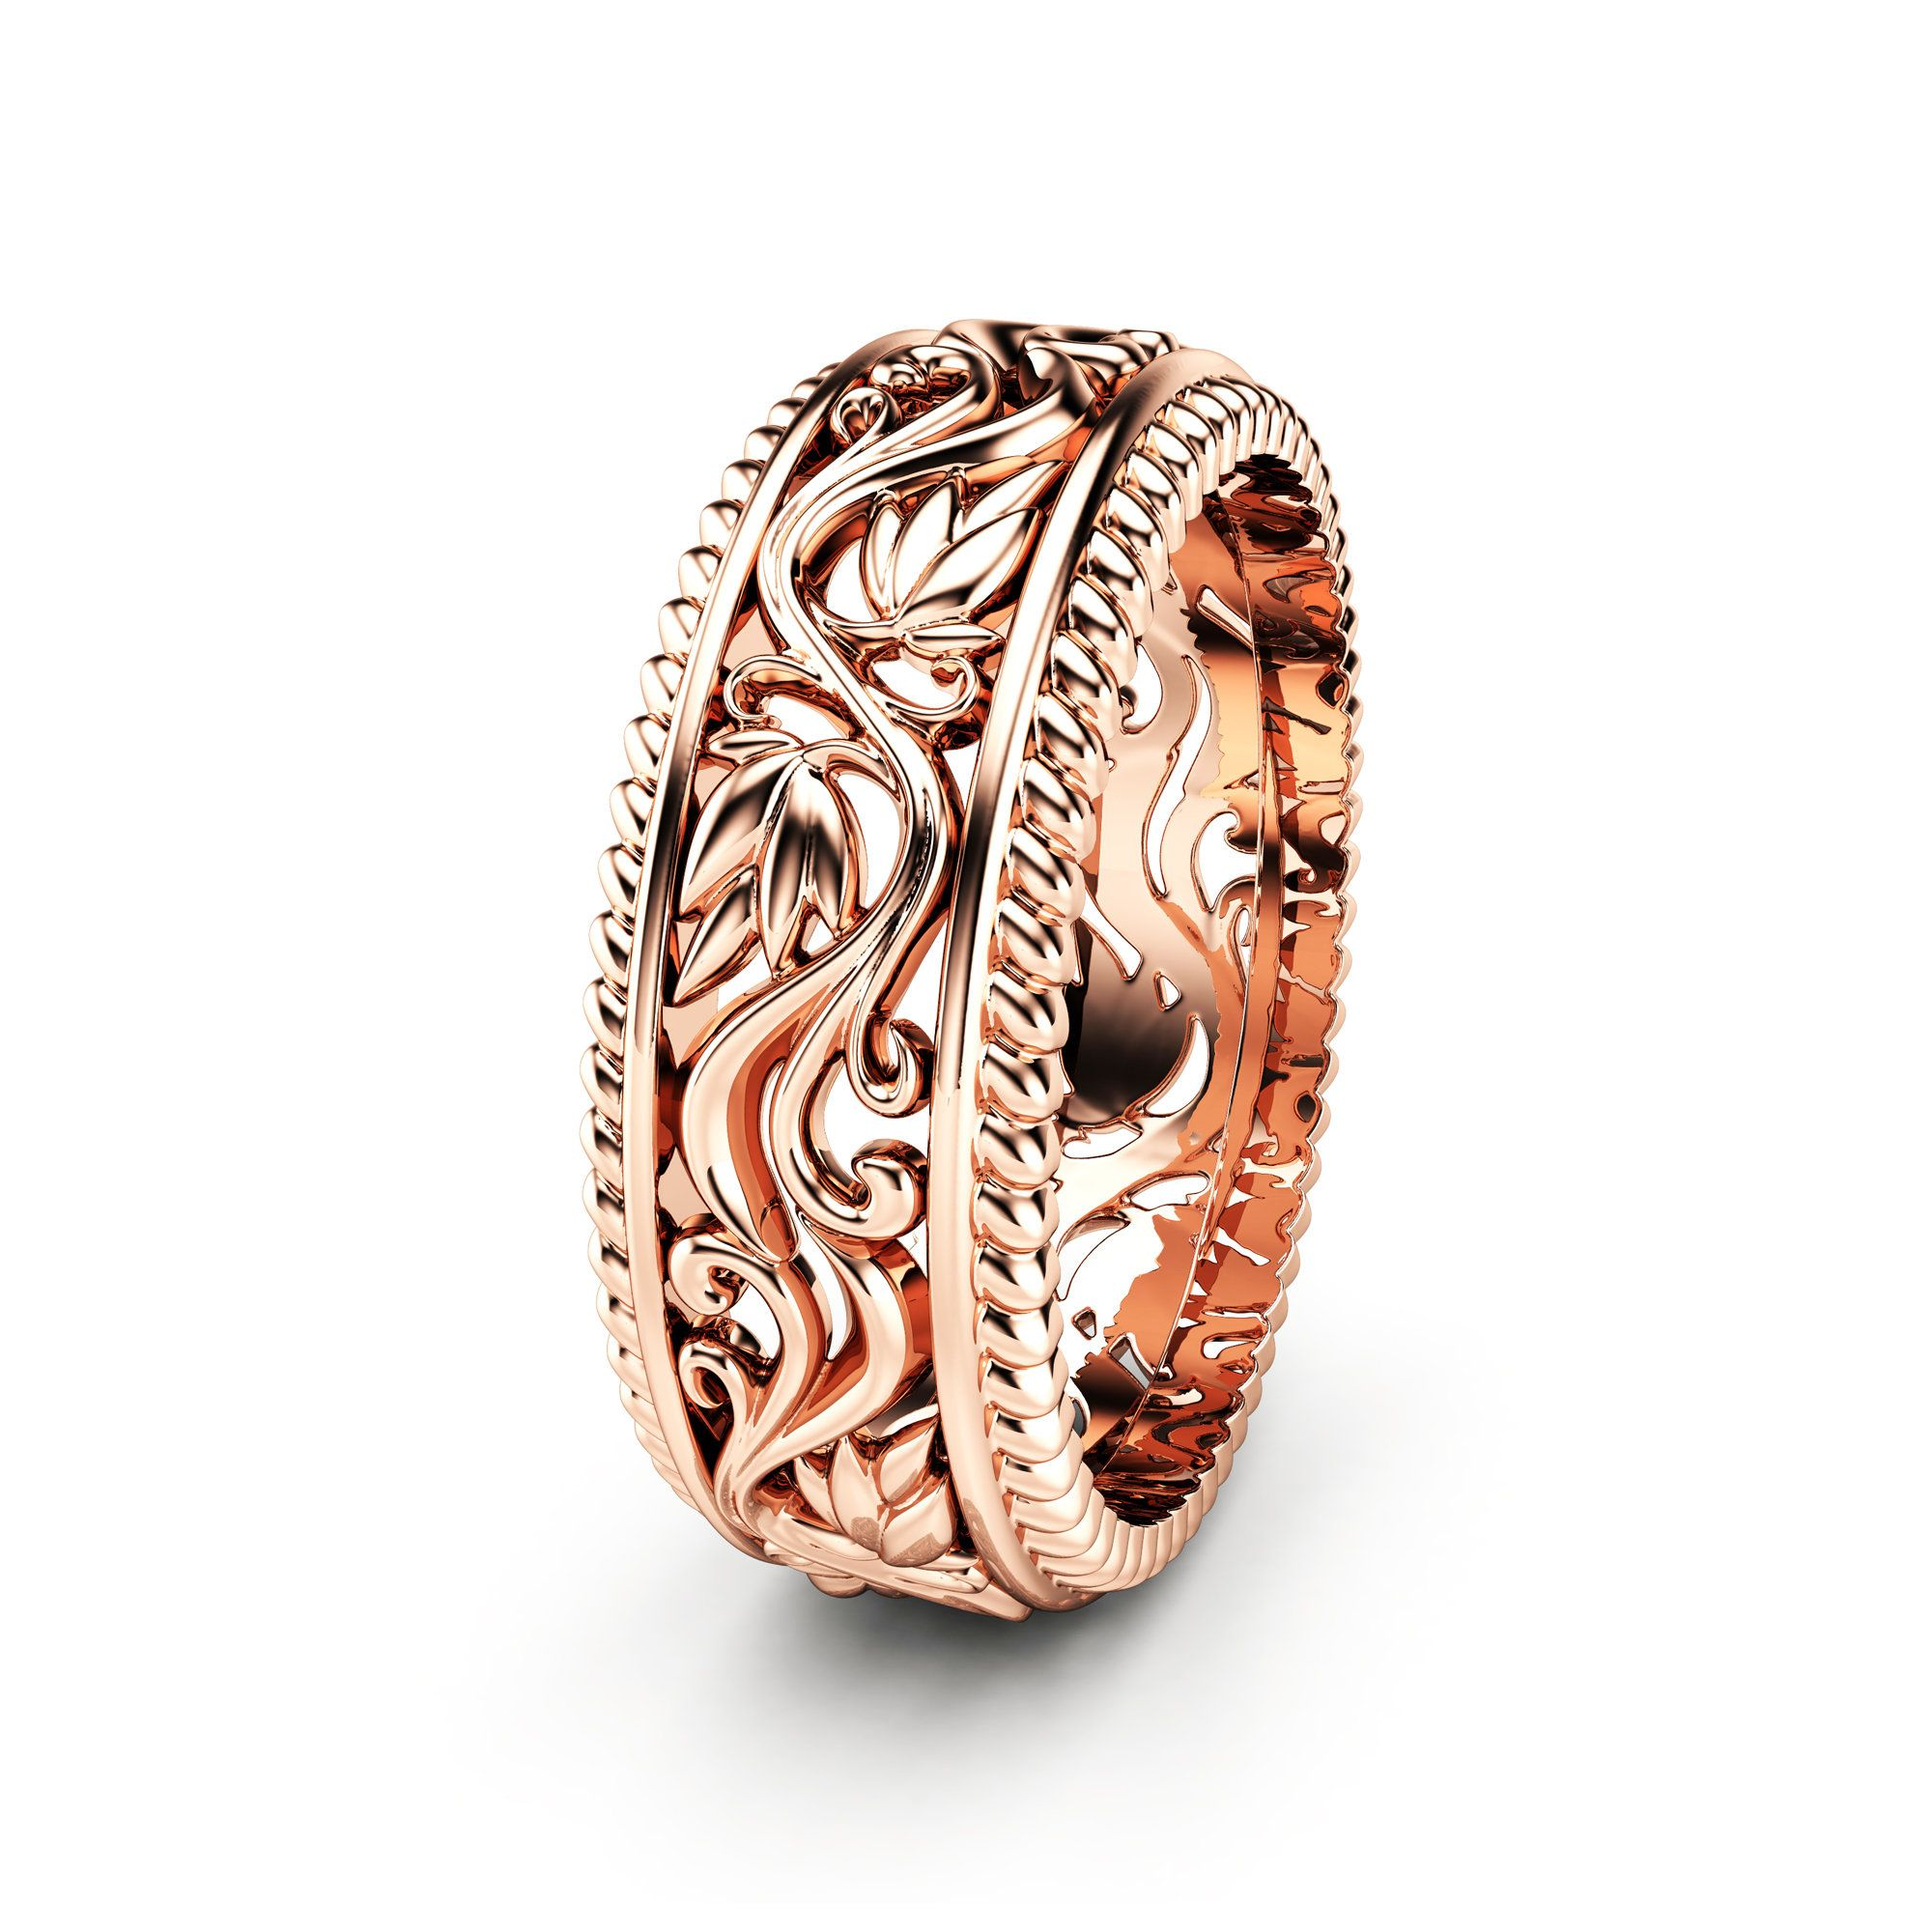 Women Wedding Band Unique Wedding Ring Gold Wedding Ring Now On Sale For Only 790 00 Don T Miss T In 2020 Wedding Rings Unique Womens Wedding Bands Gold Wedding Band